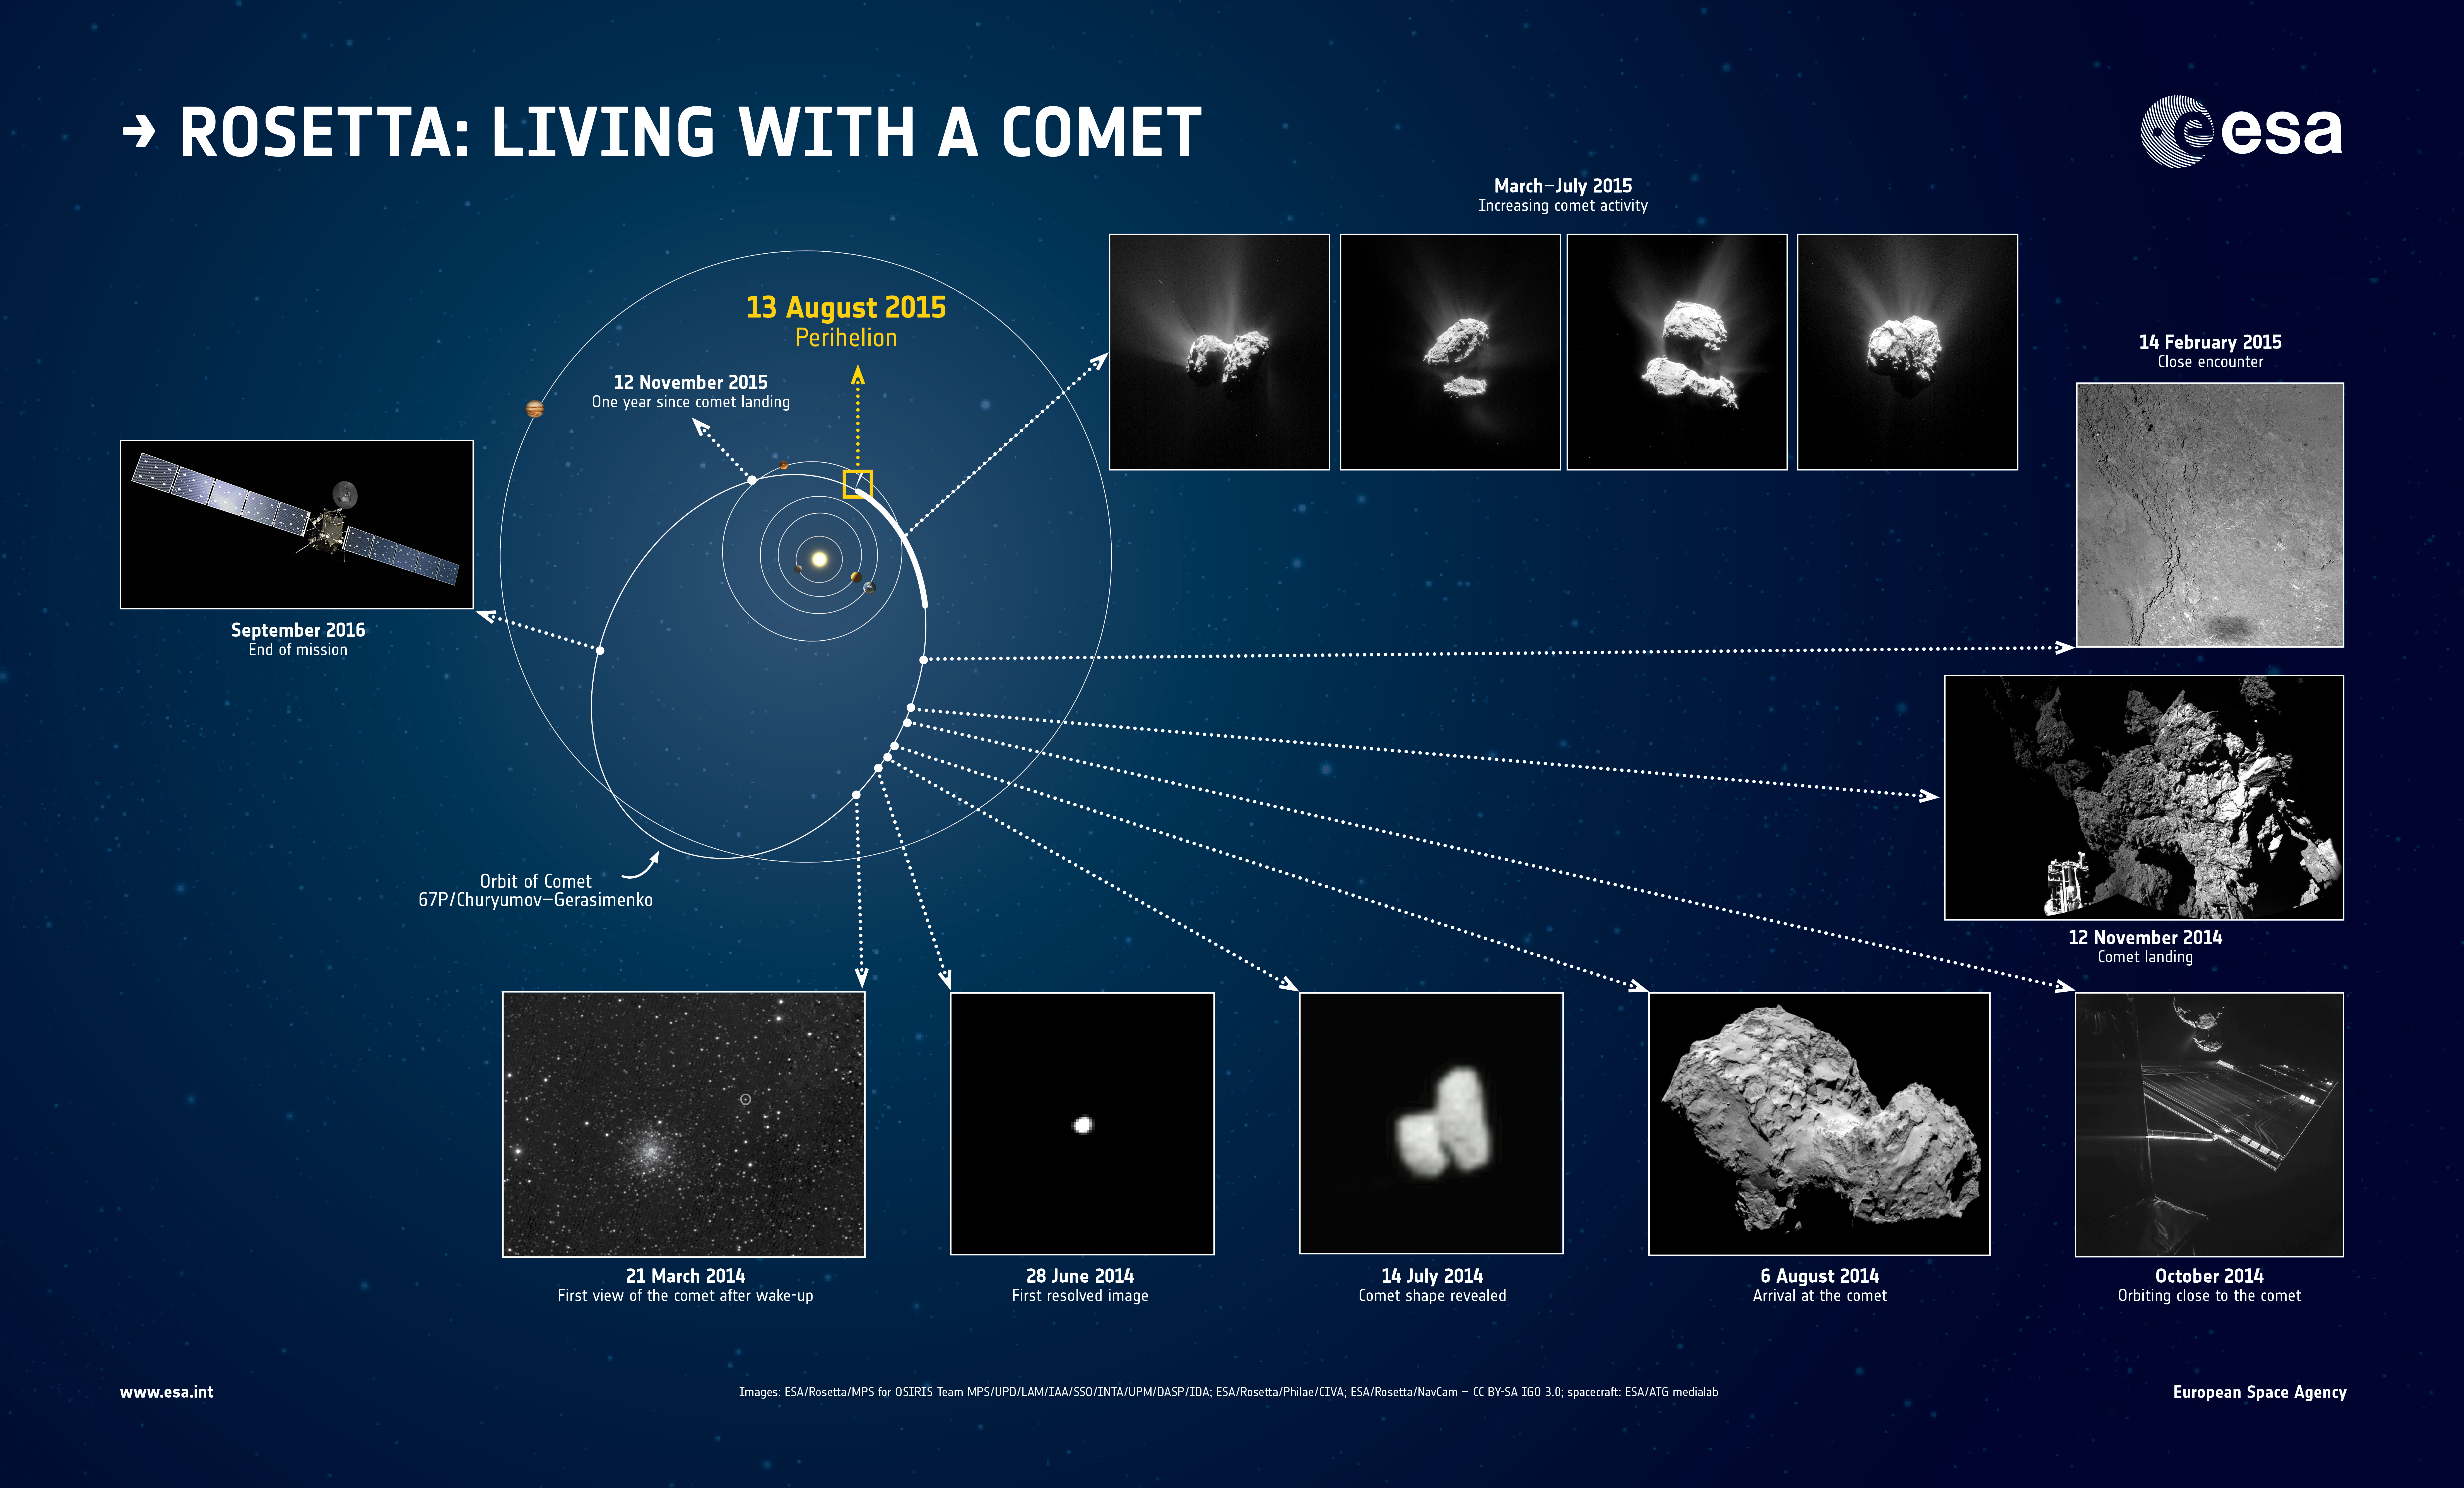 Celebrating a year at the comet – Rosetta – ESA's comet chaser